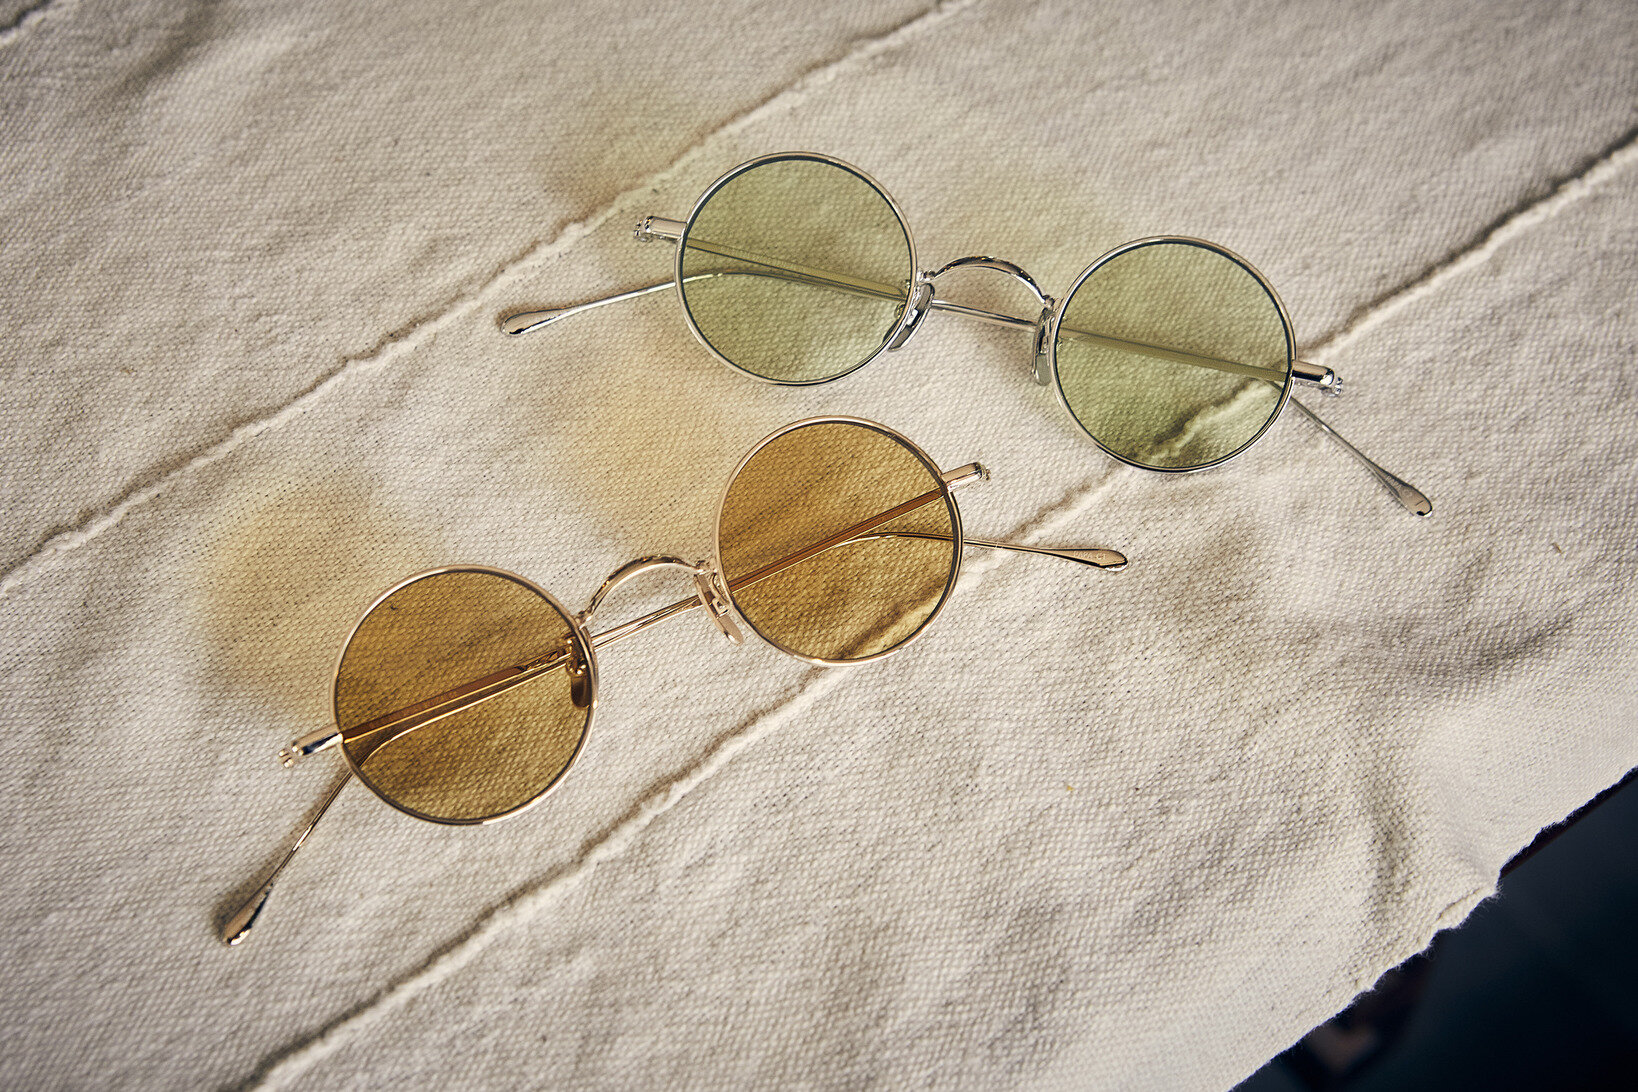 <a href=http://globespecs.co.jp/products/detail/?id=755 target='_blank'>PAPA</a> ¥41,800(税込)4色展開 /オールドジョー グローブスペックス オプティカル コー(グローブスペックス)